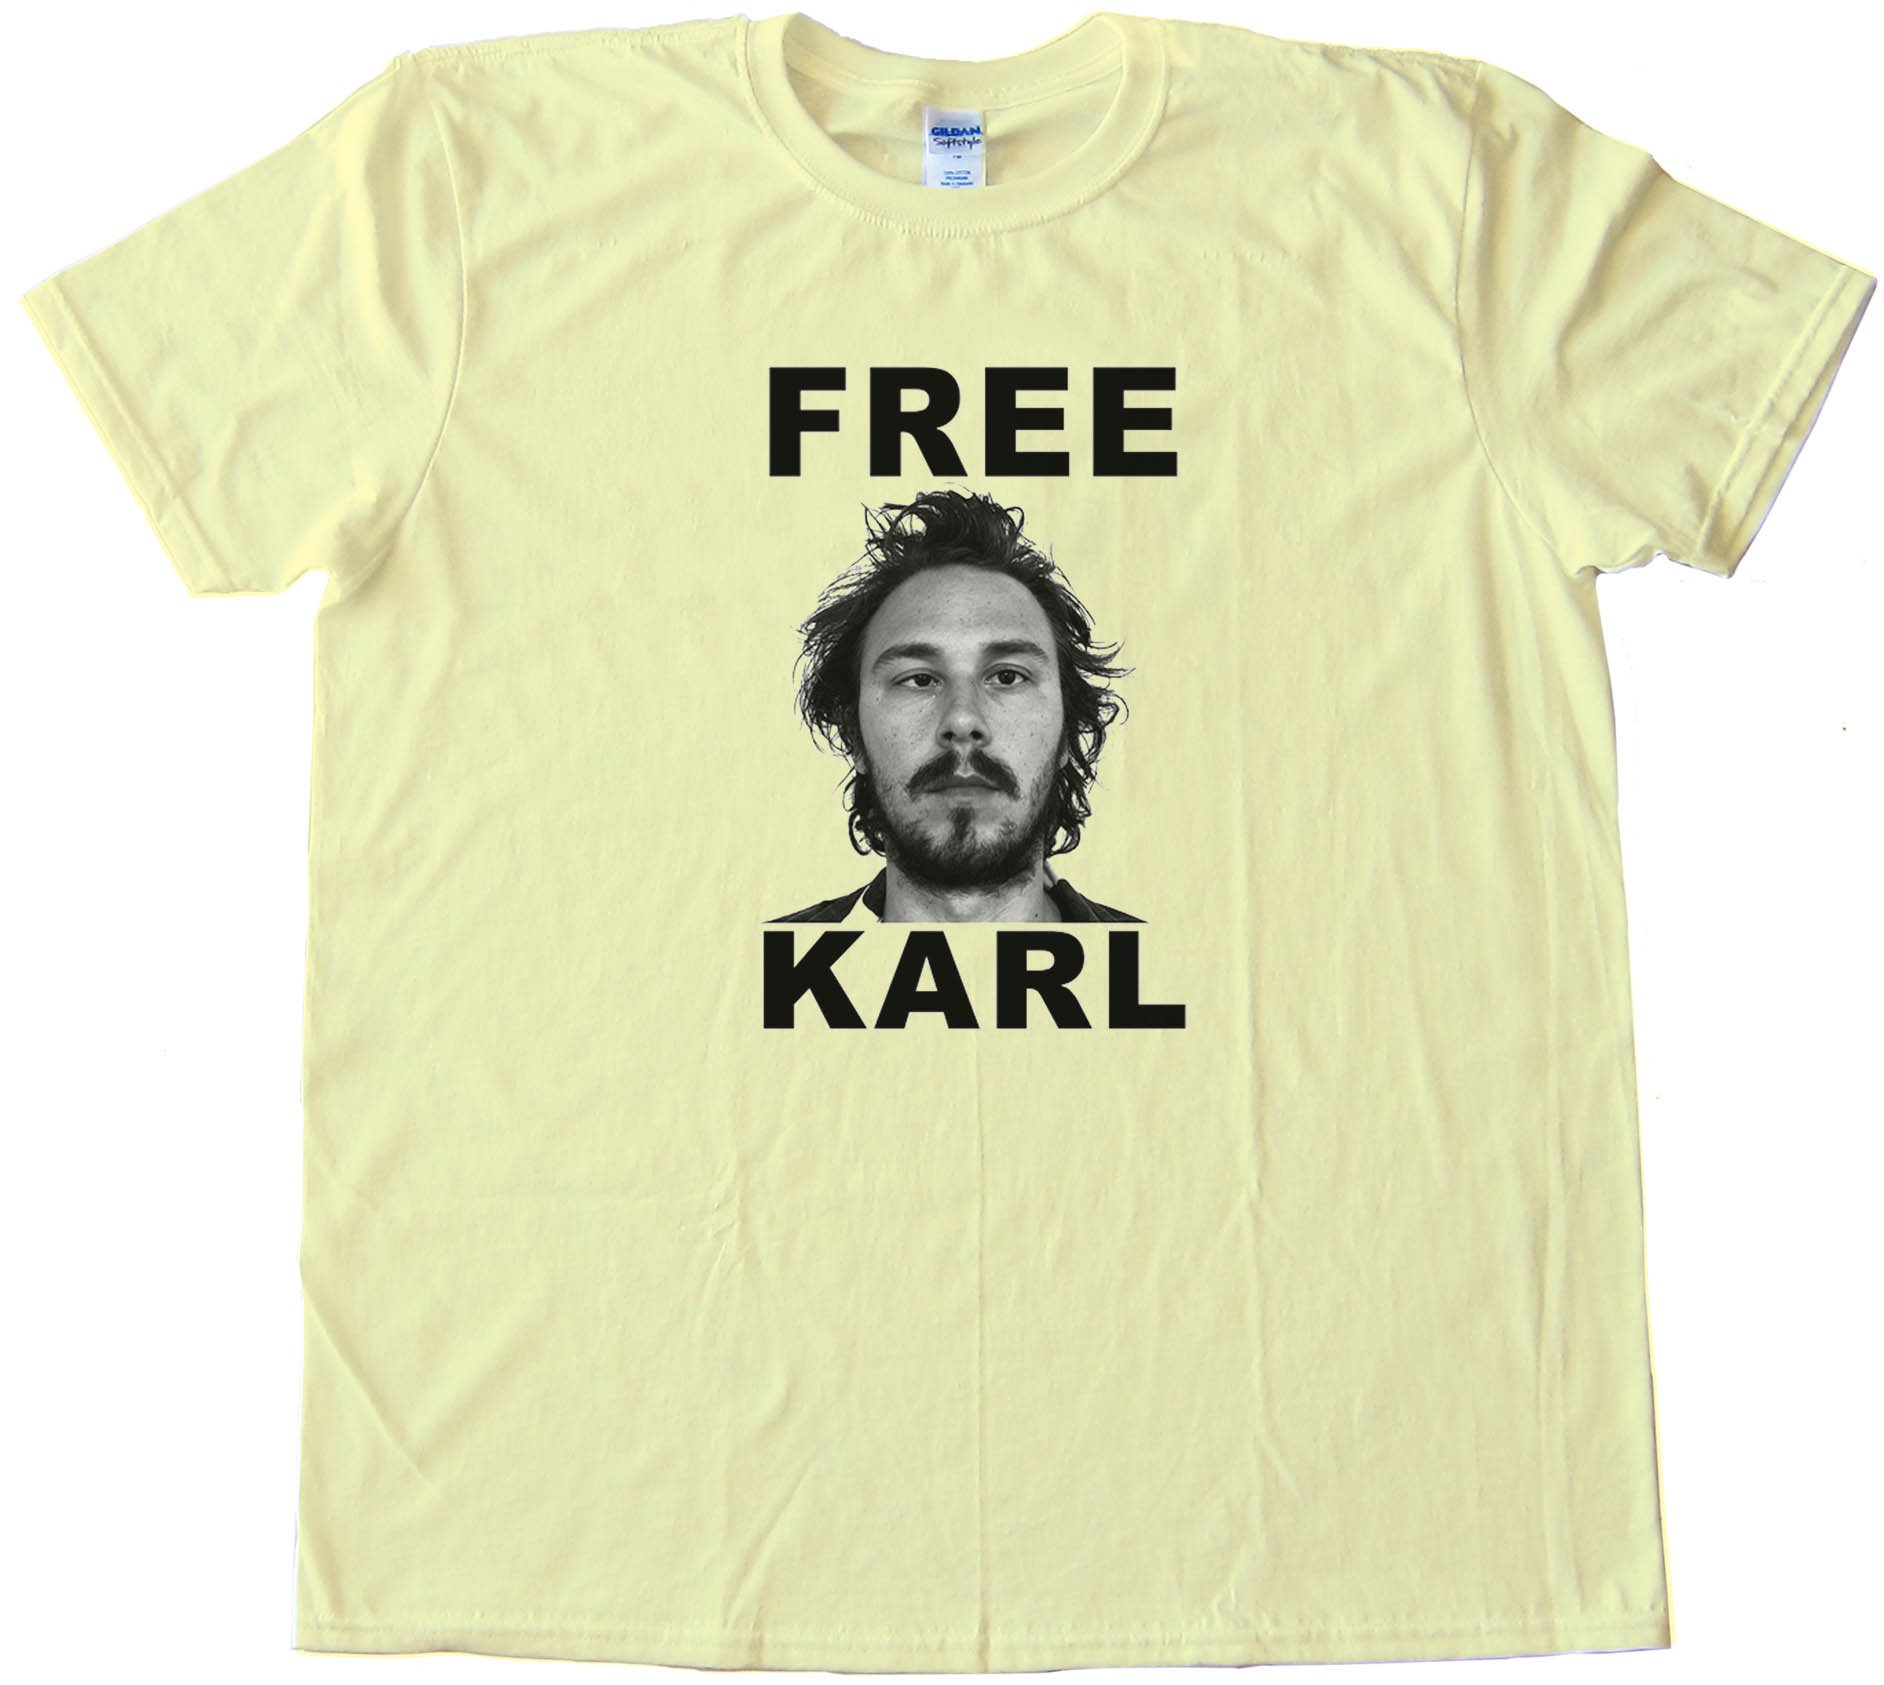 Free Karl Workaholics - Tee Shirt